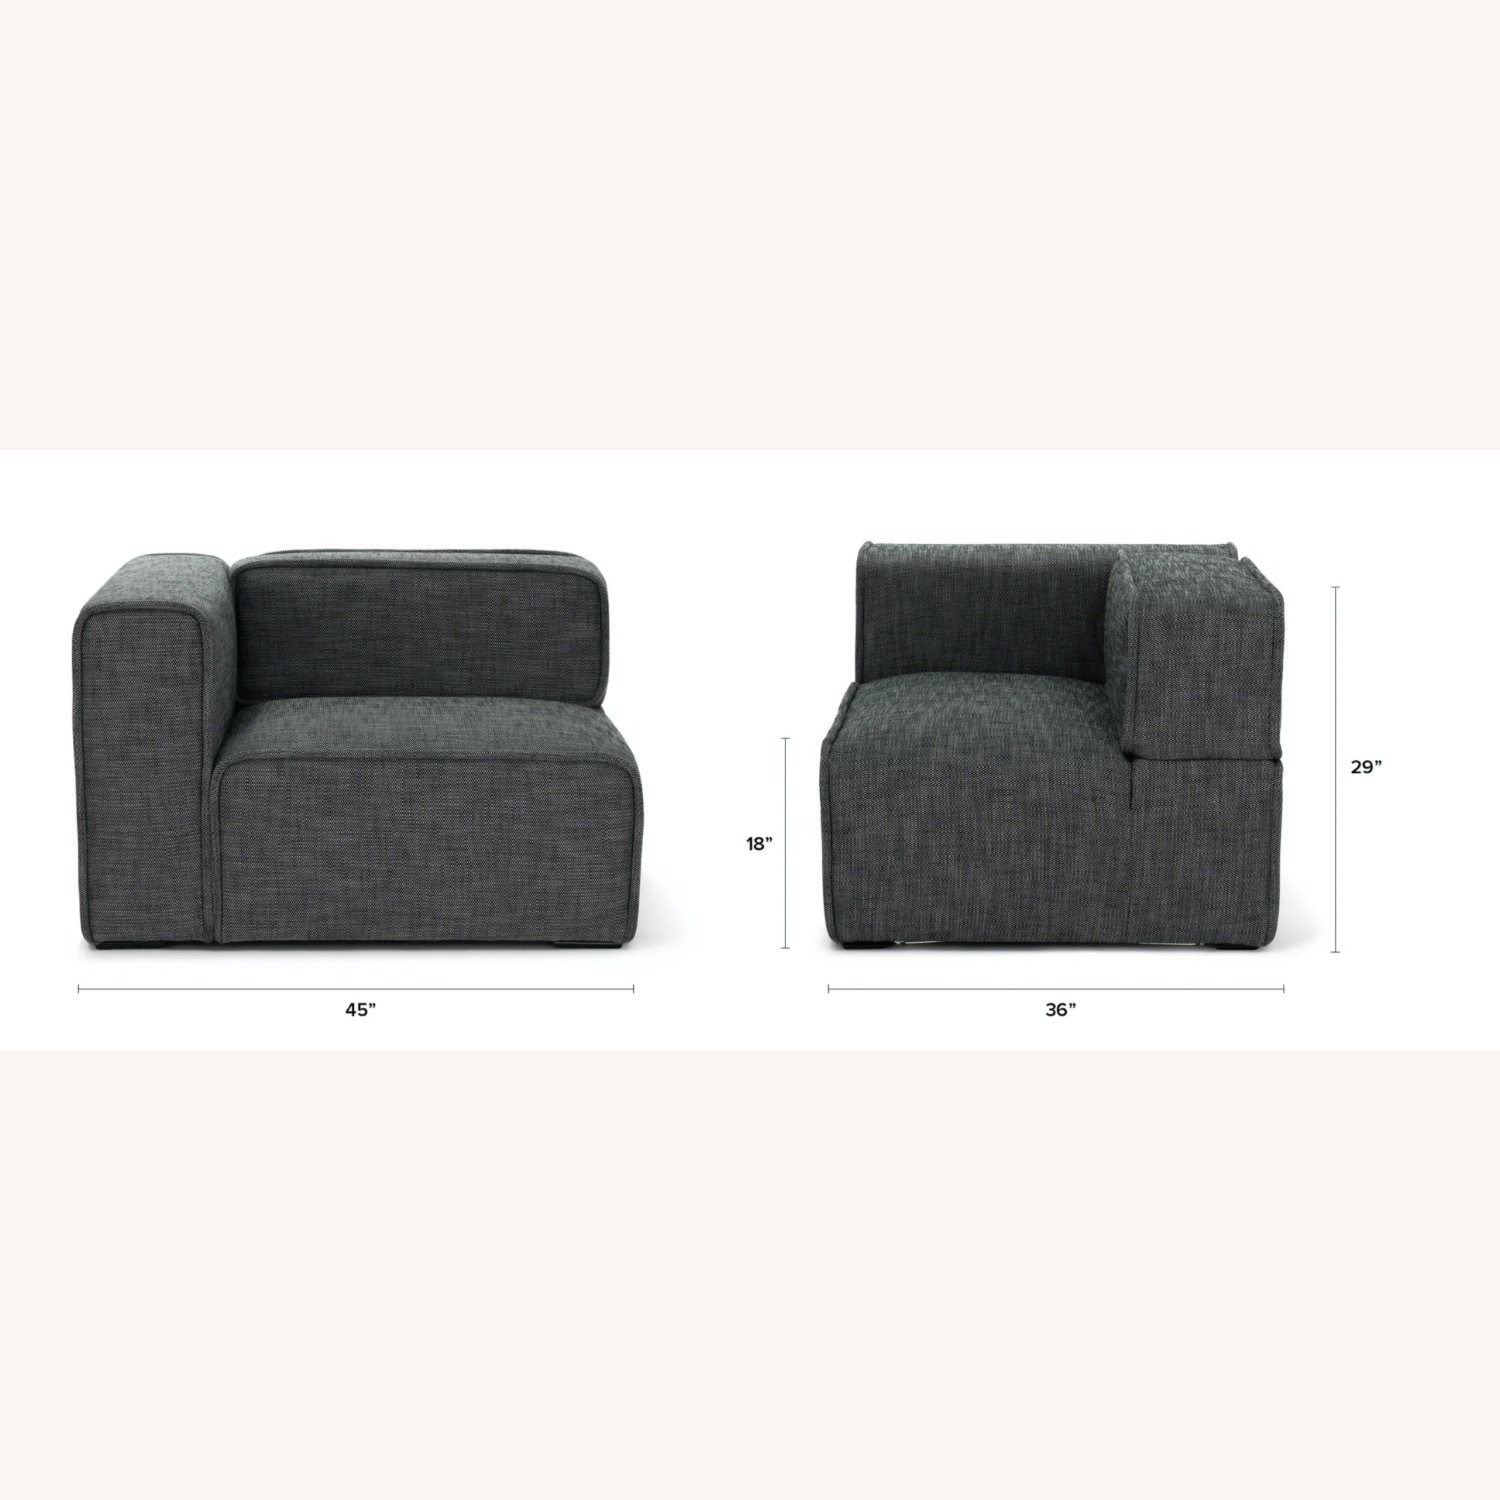 Article Quadra Carbon Gray Couch - image-2